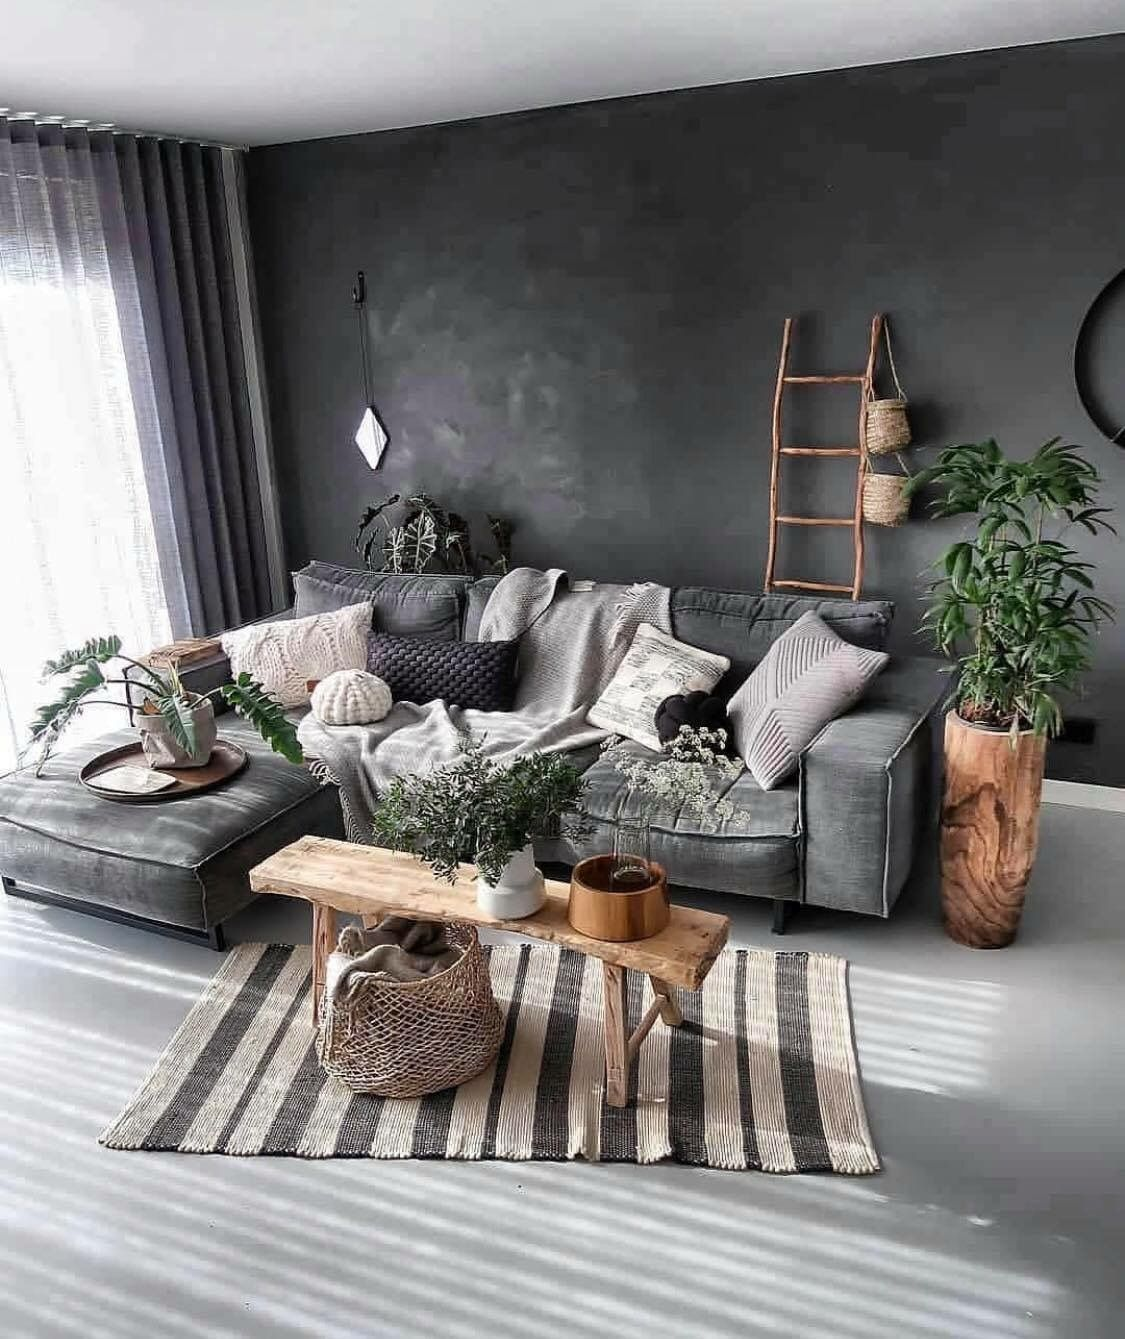 Cosy Lounge Room By Judith Huizedop On Instagram Interiorstyling Interiors Design Dautore Organic Living Room Dark Living Rooms Boho Living Room